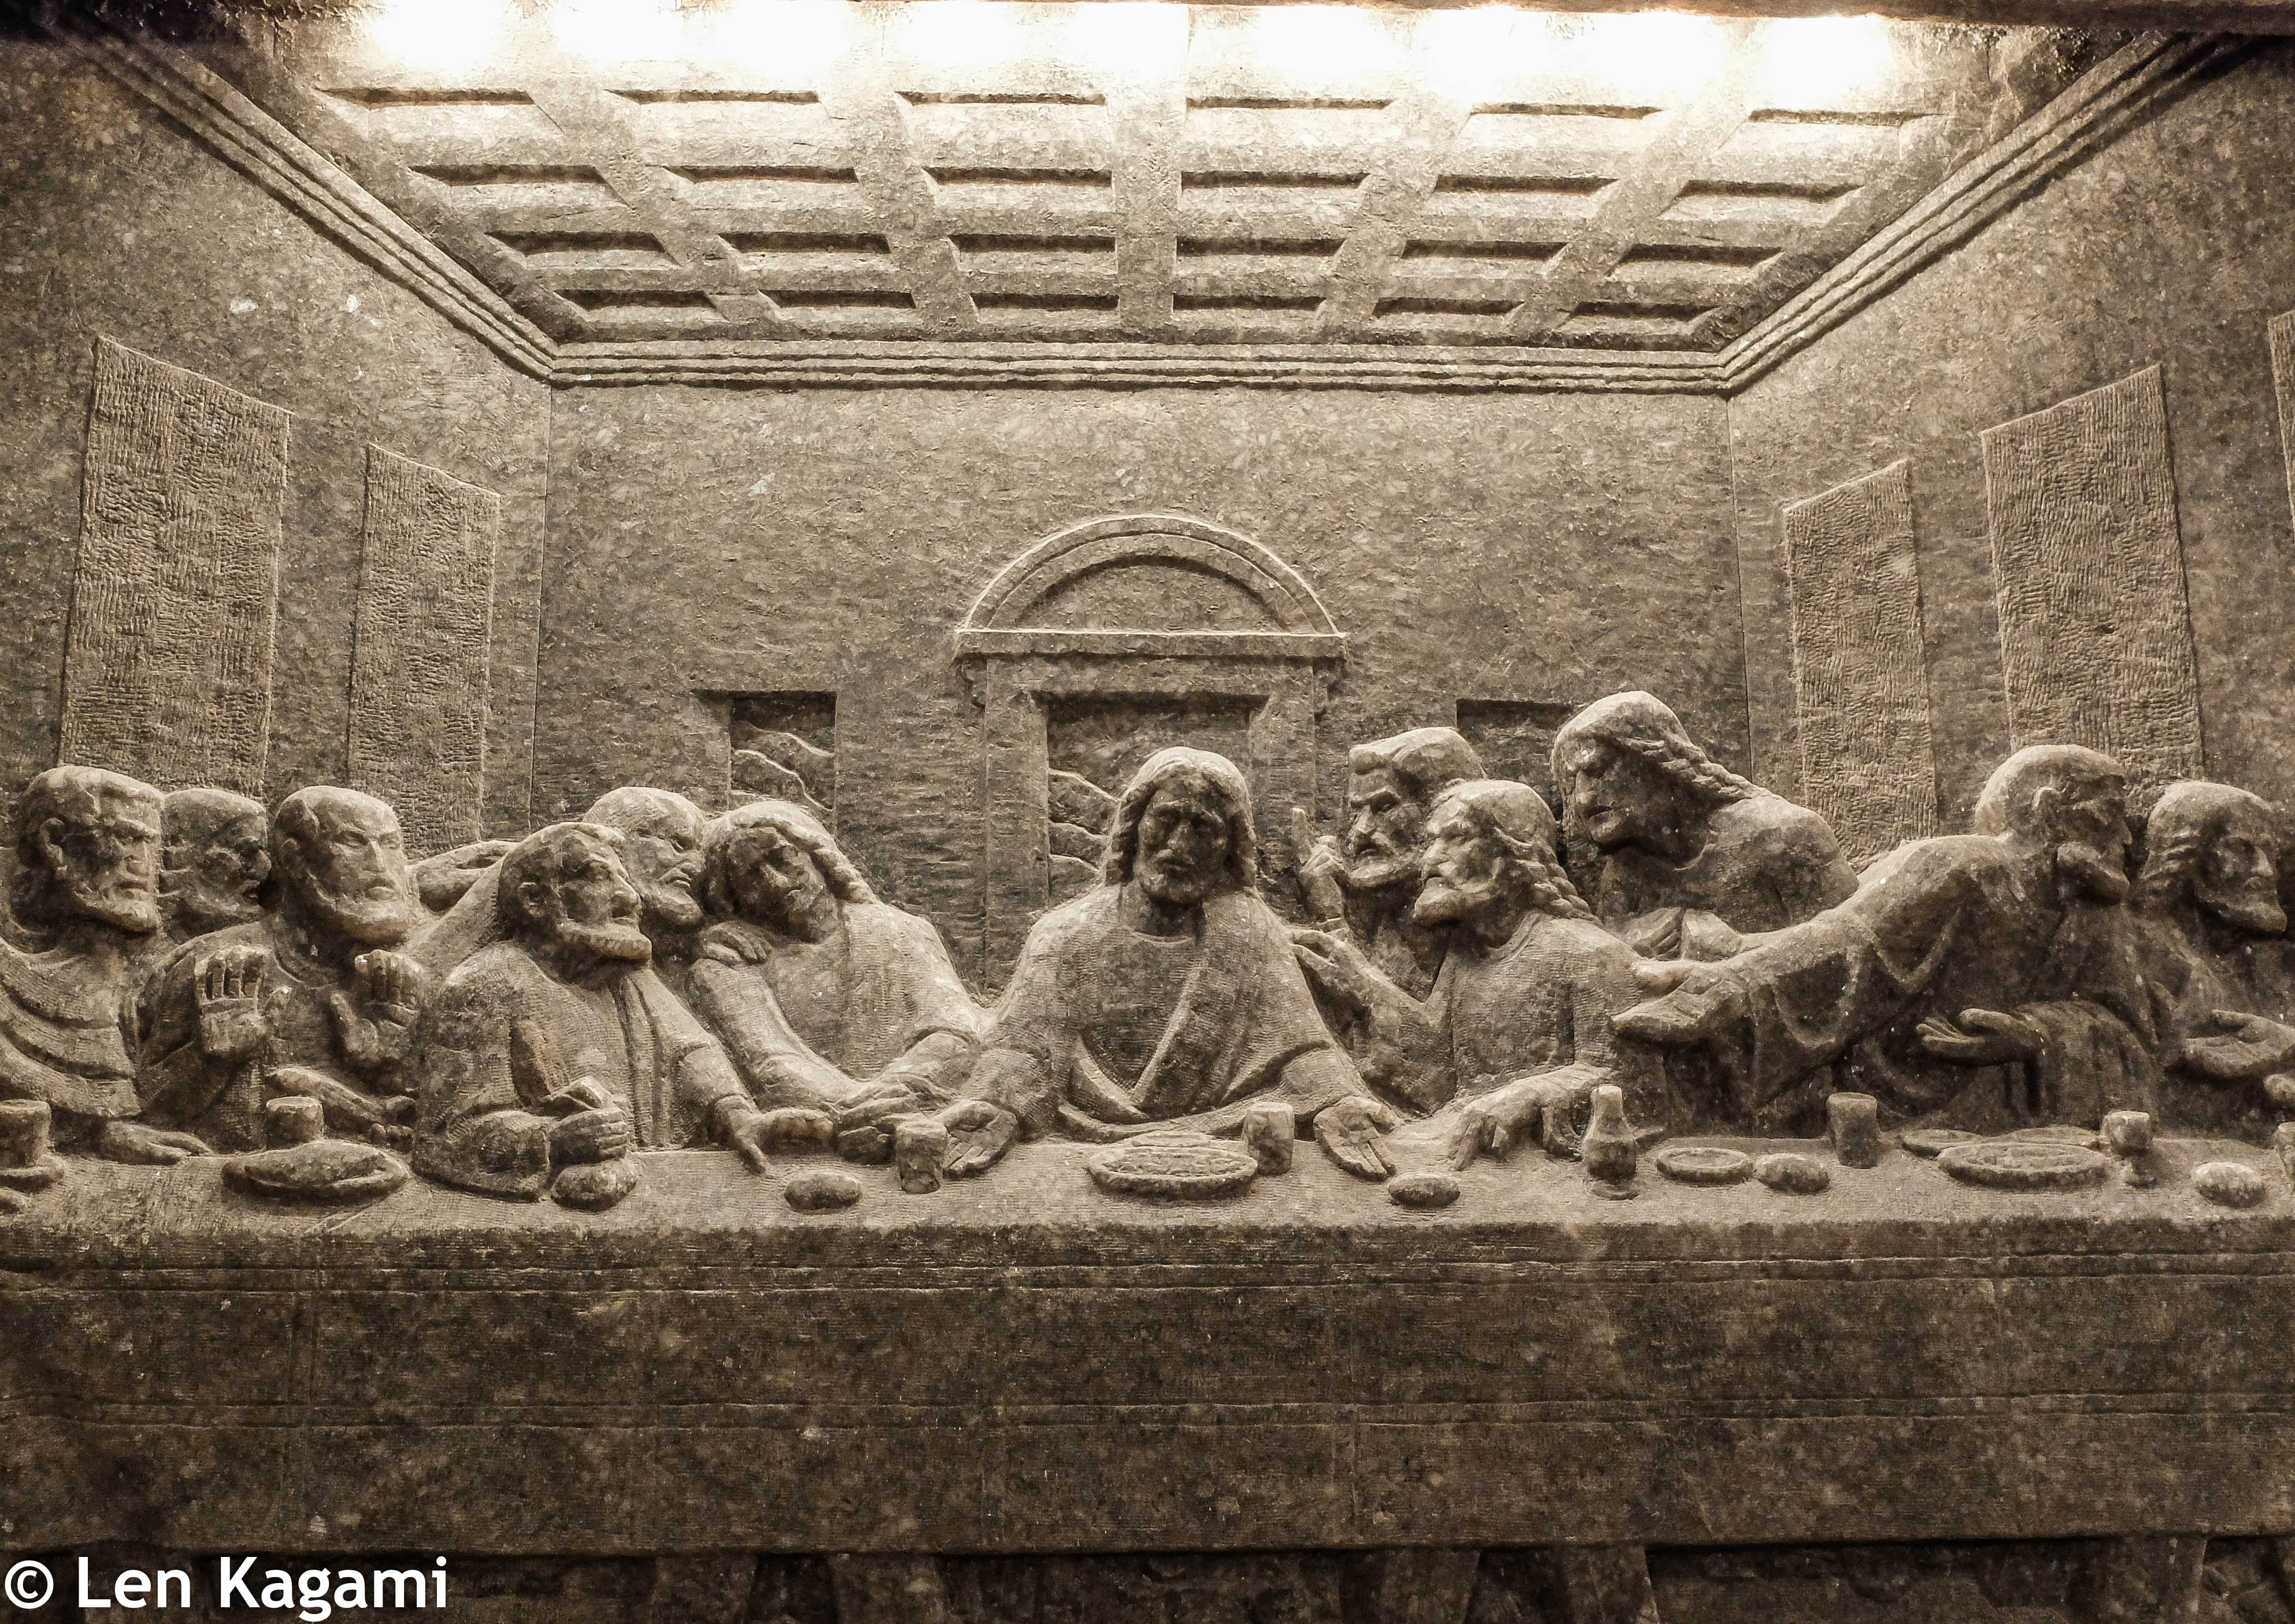 The Last Supper made of rock salt